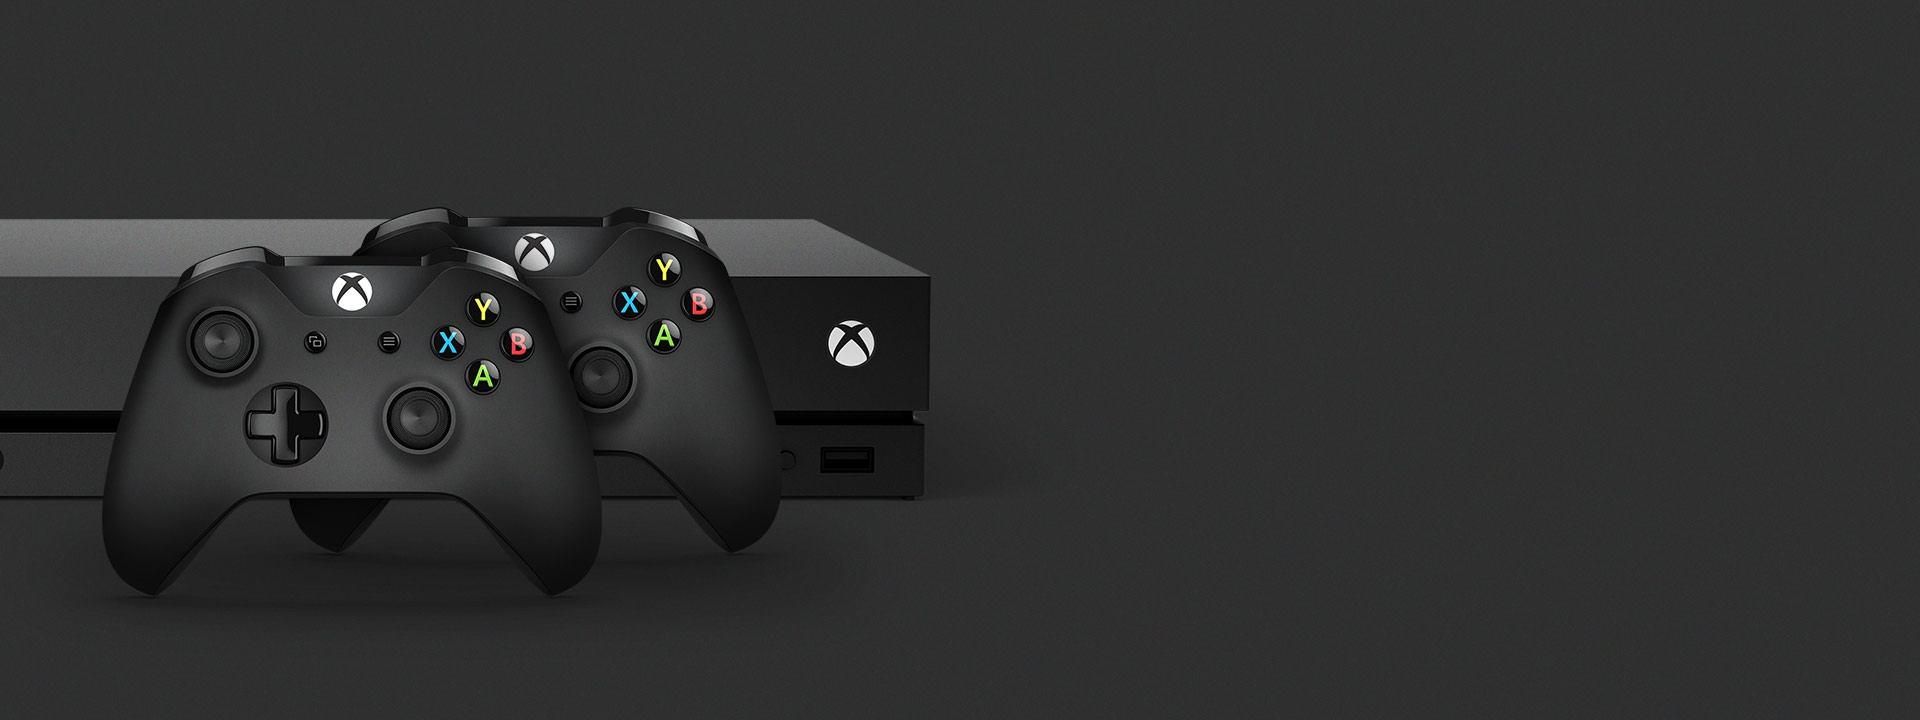 Two Xbox black Controller infront of a front view of Xbox One X